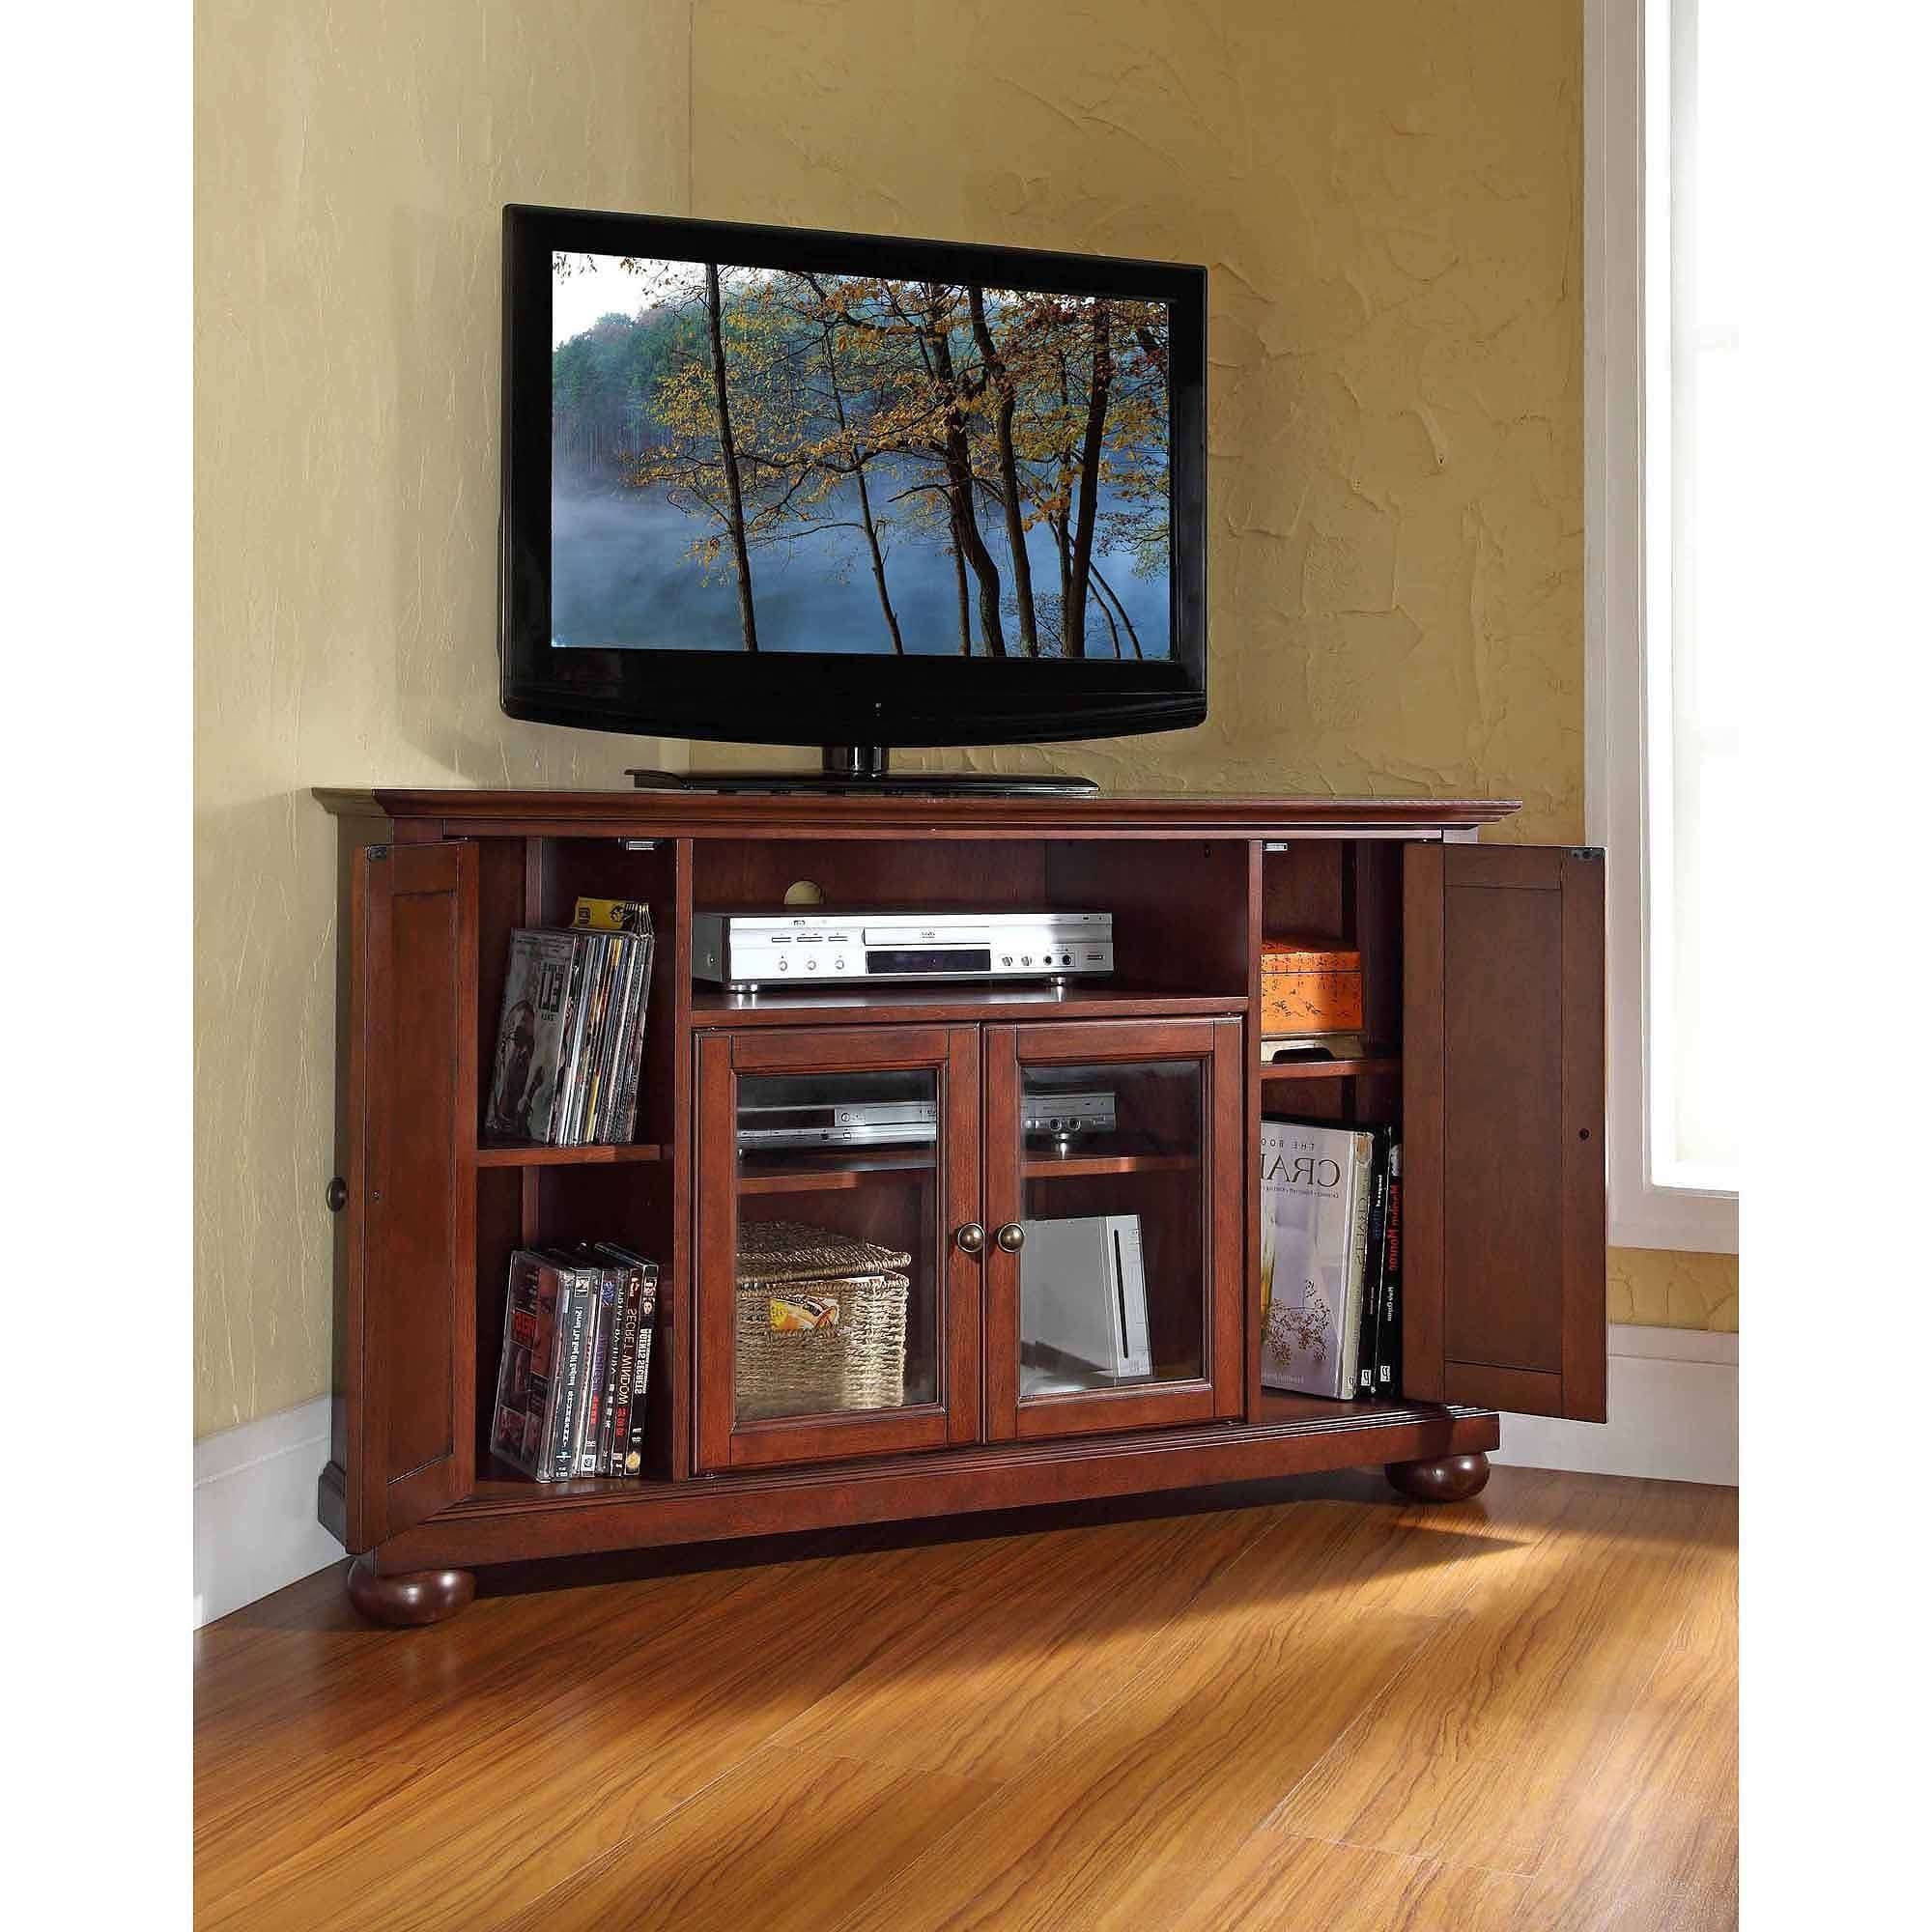 Tv Stand : Tv Stand Corner 70420208fbe0 1 Largeireplace Standtv In Flat Screen Tv Stands Corner Units (View 3 of 20)